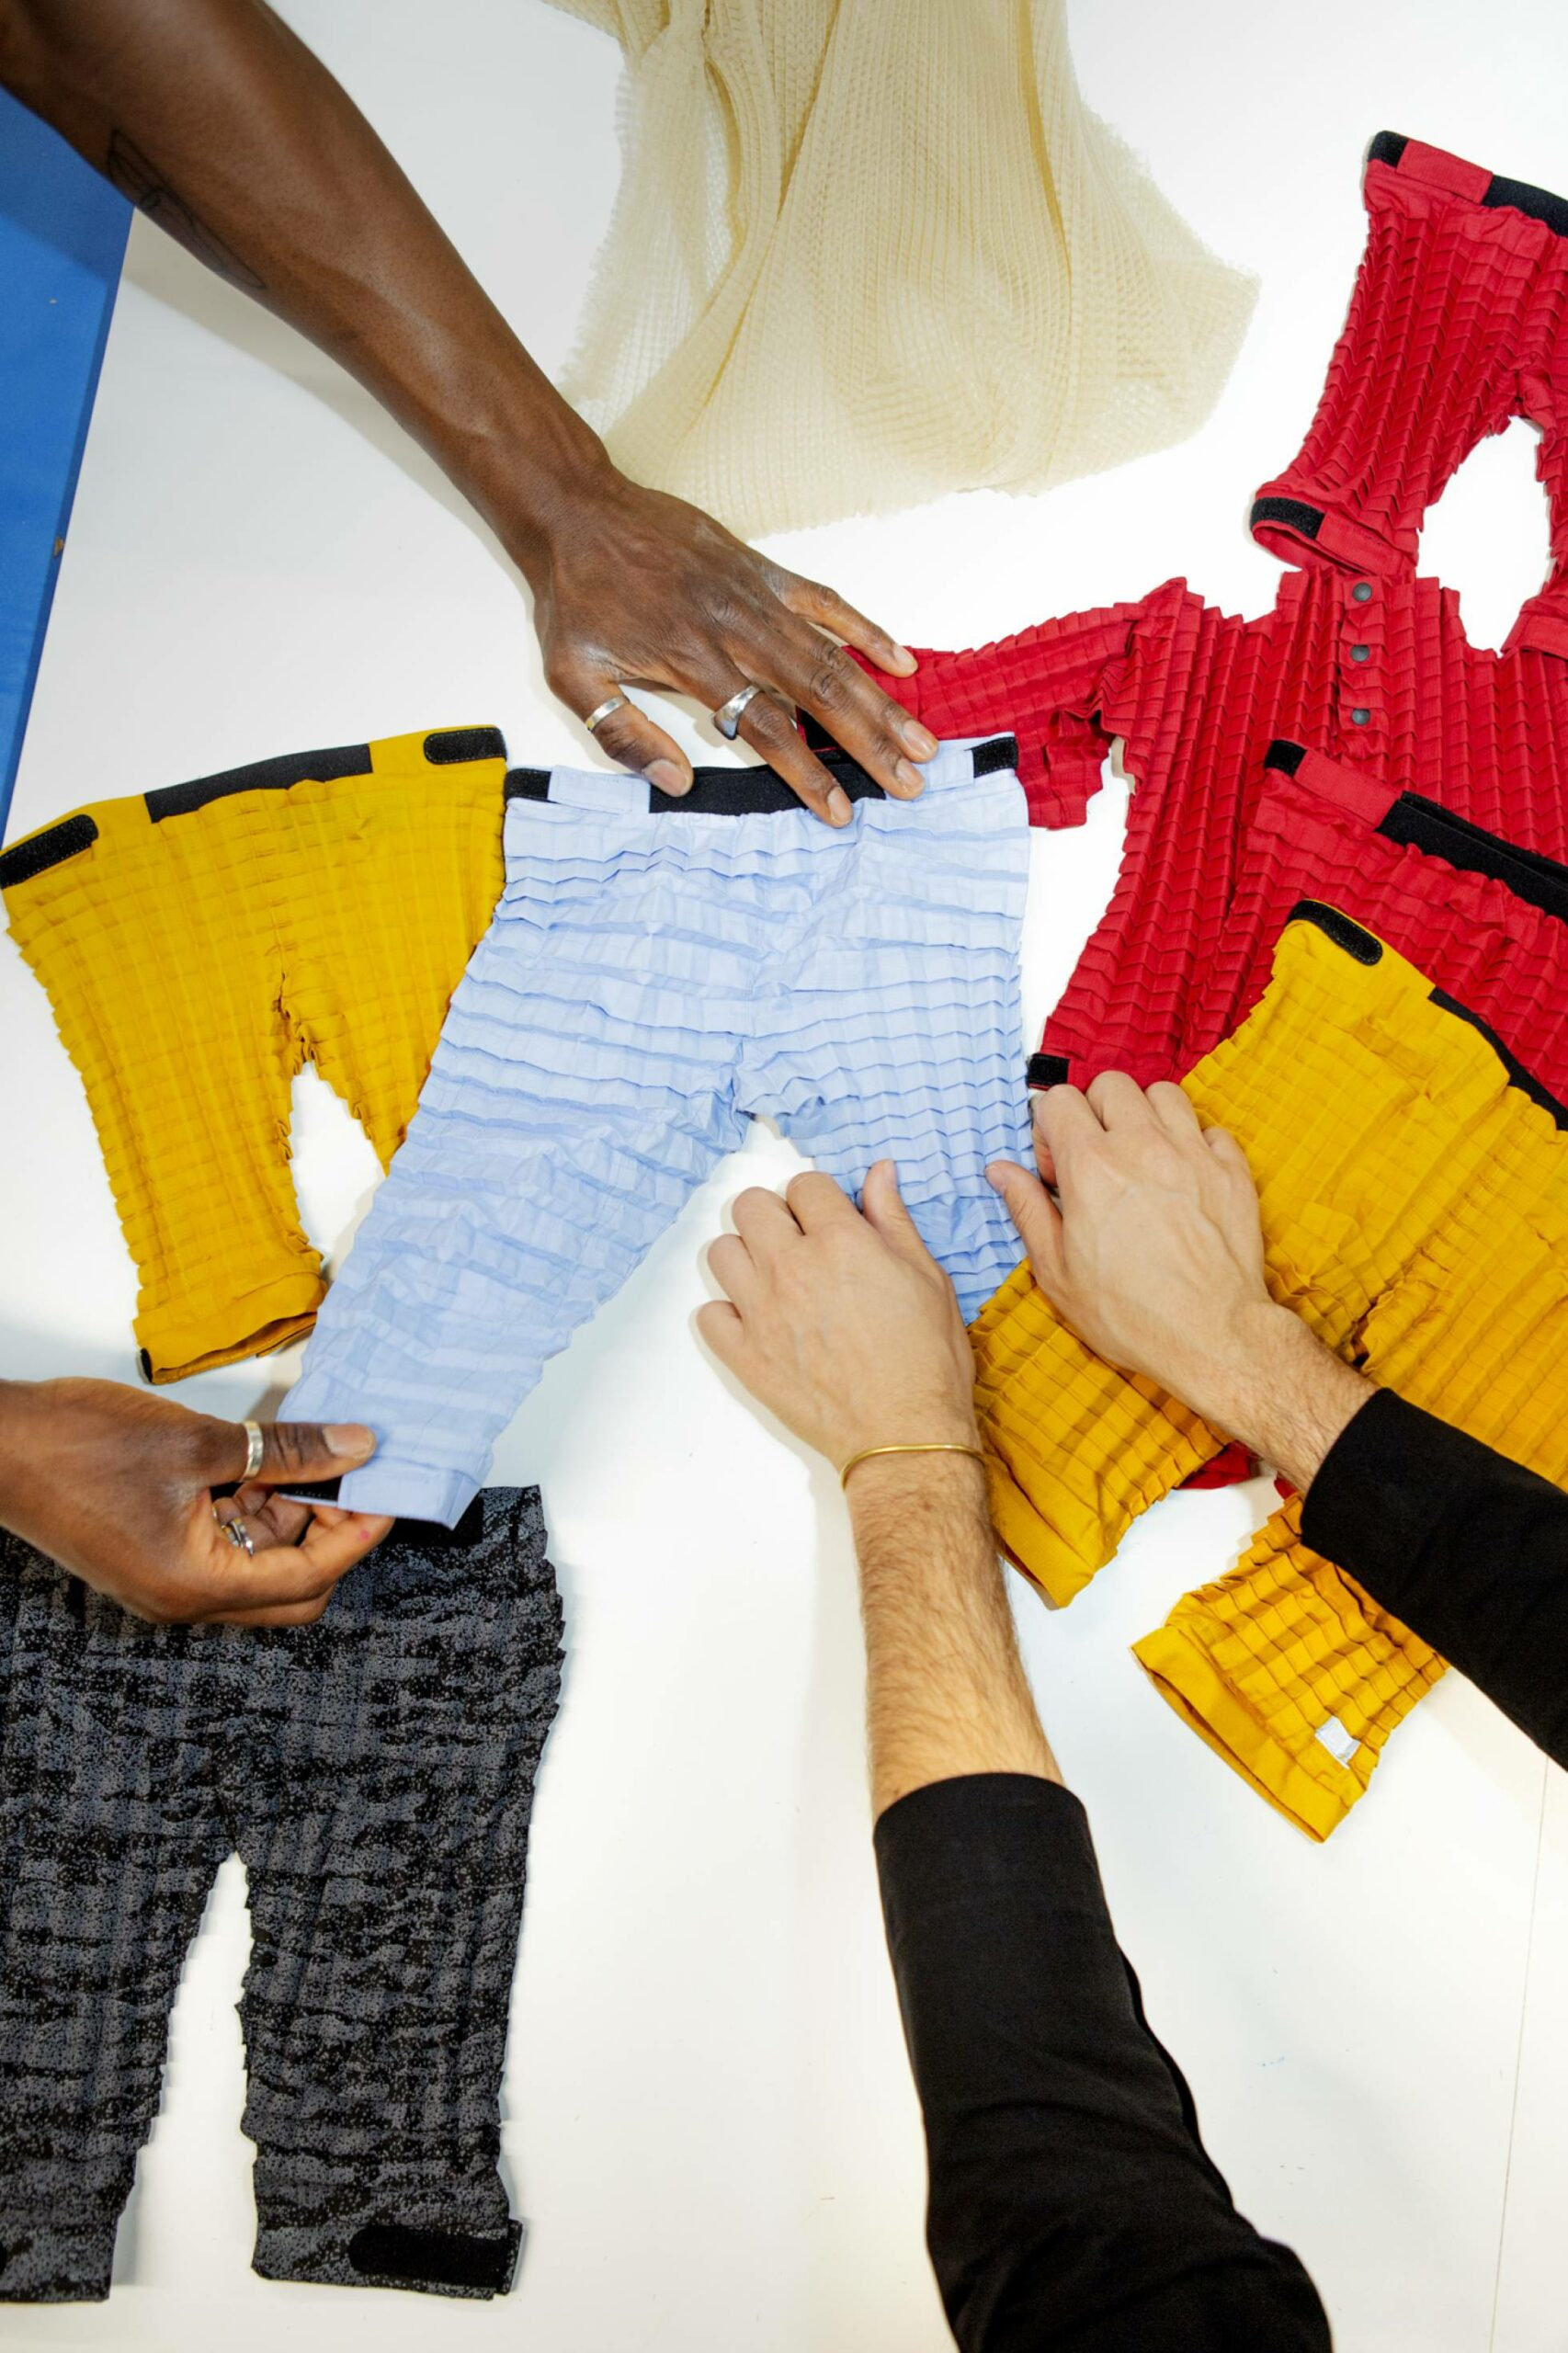 Clothes that stretch and fit many sizes were created thanks to the inventor's technical knowledge.